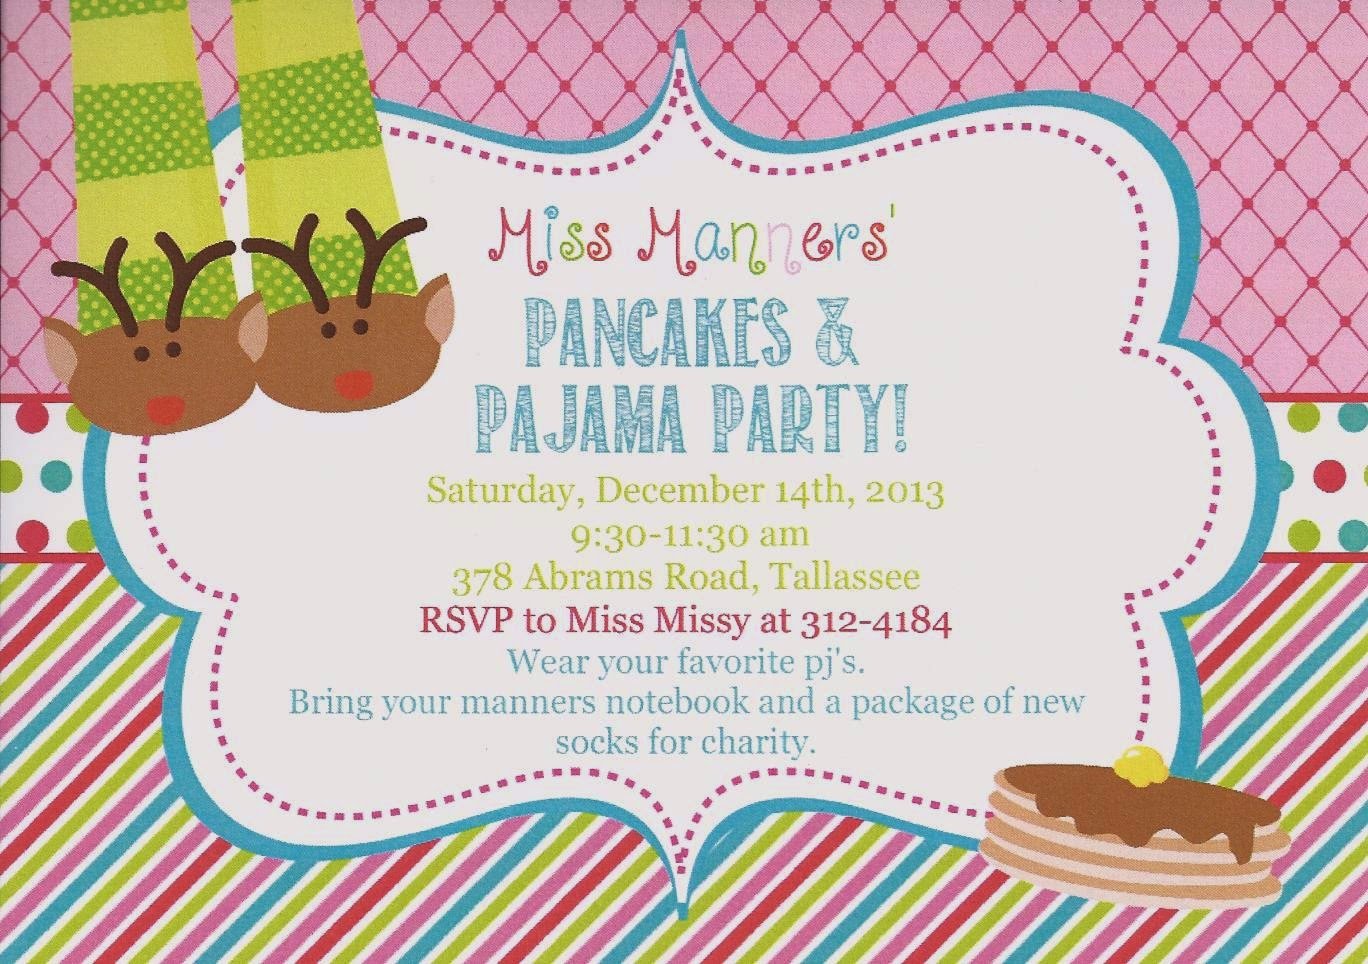 Our Neck Of The Woods: Pancakes and Pajamas? Yes, please!